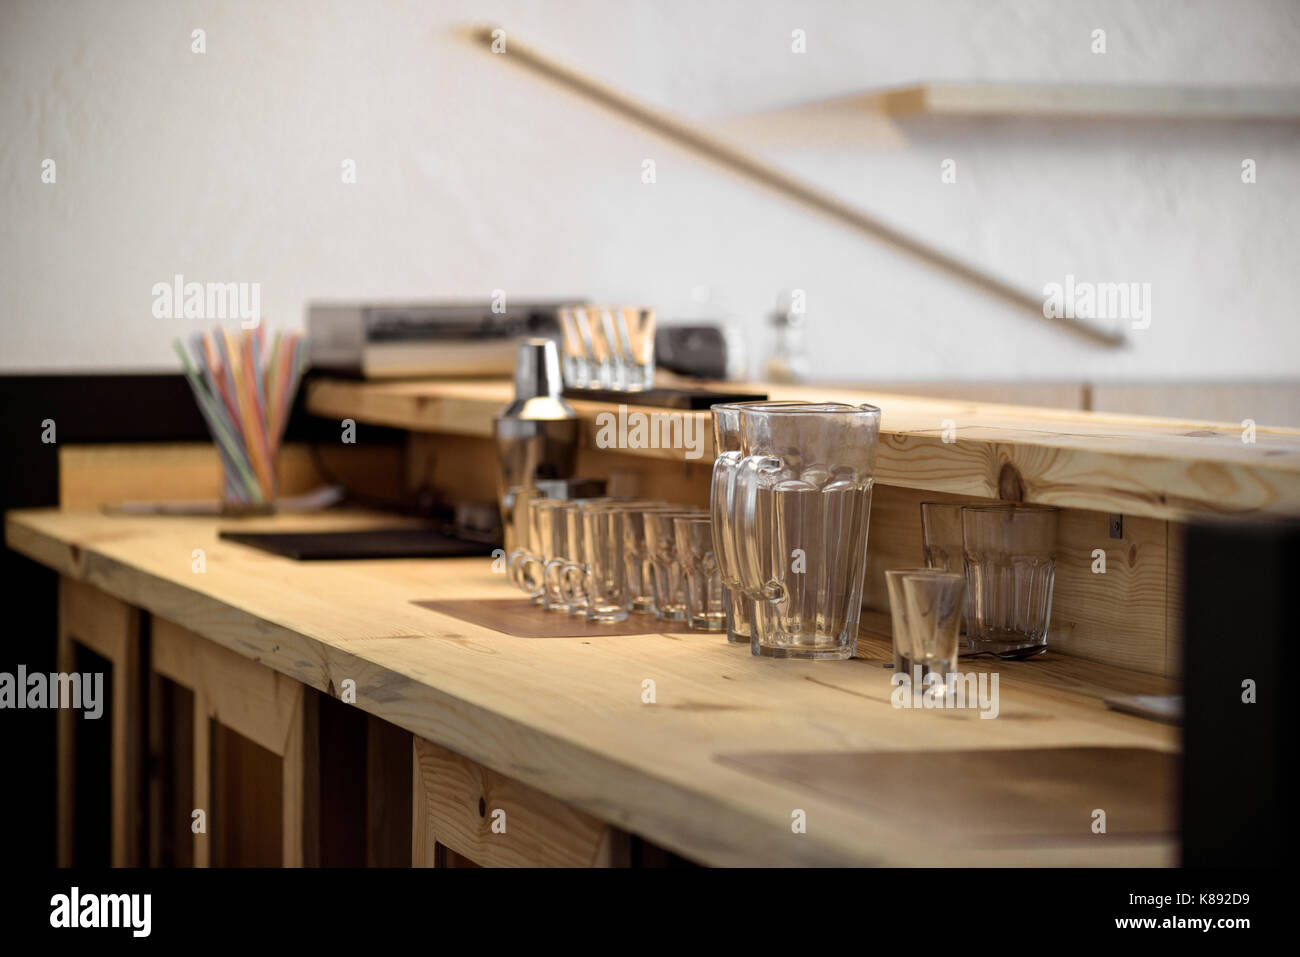 empty glasses on bar counter - Stock Image